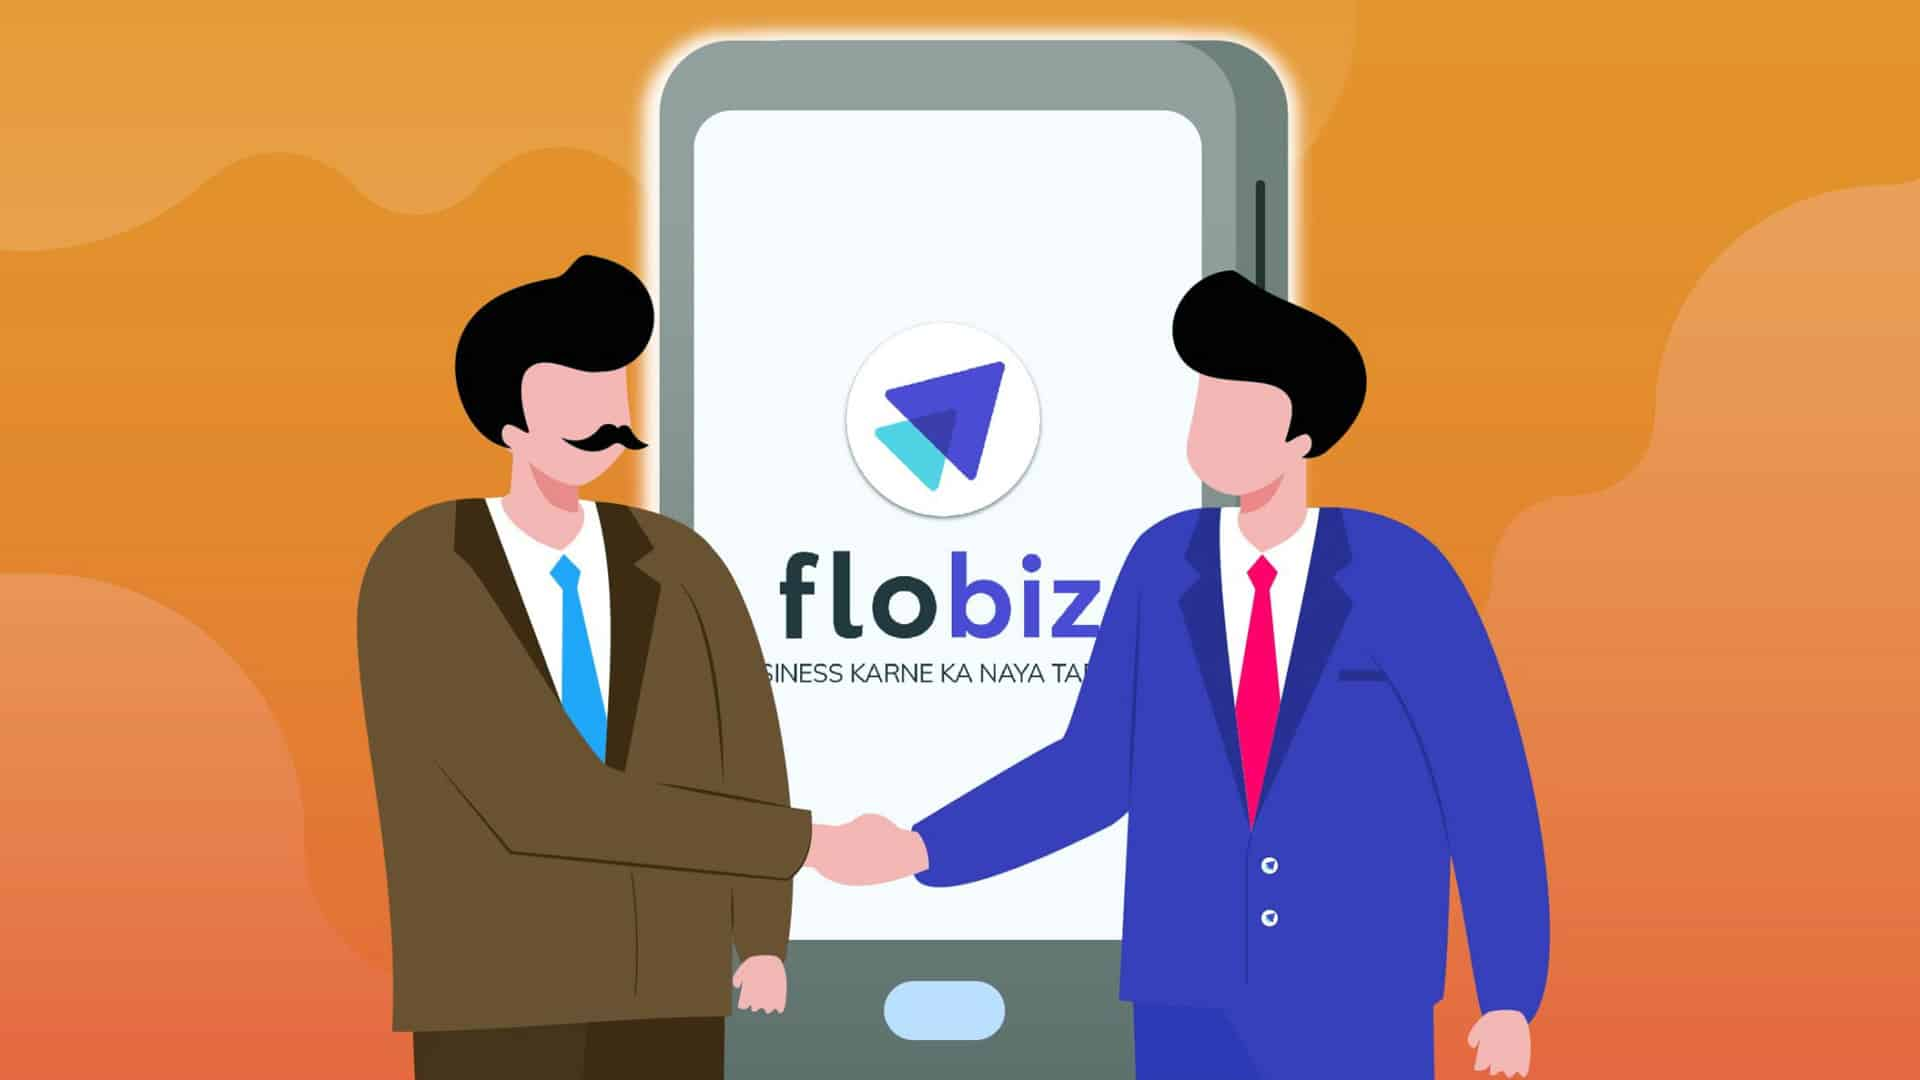 FloBiz secures USD 31 million in Series from Sequoia Capital, others